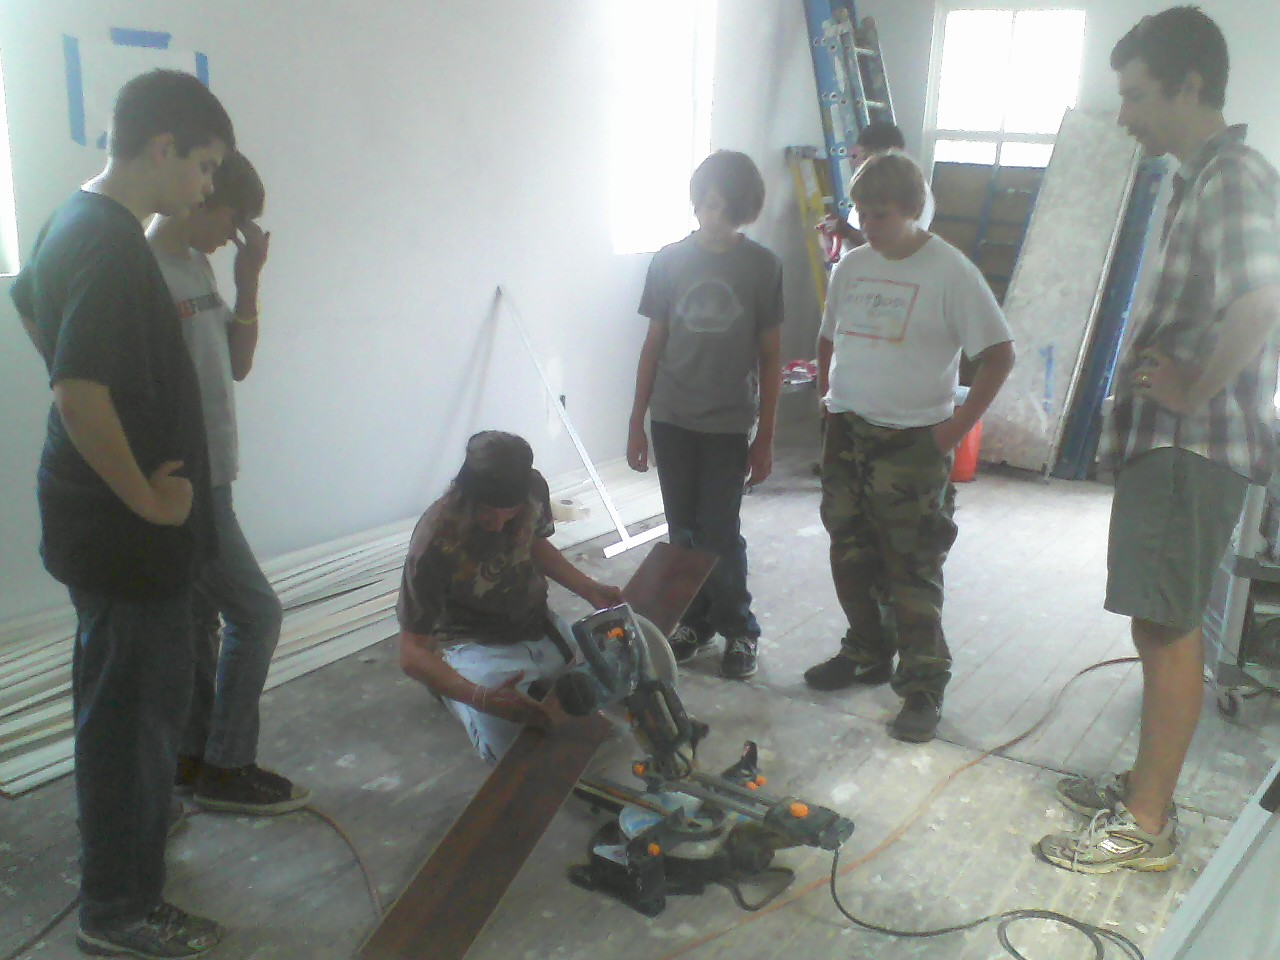 Ryan demonstrates his carpentry skills to the Salcedo crew.